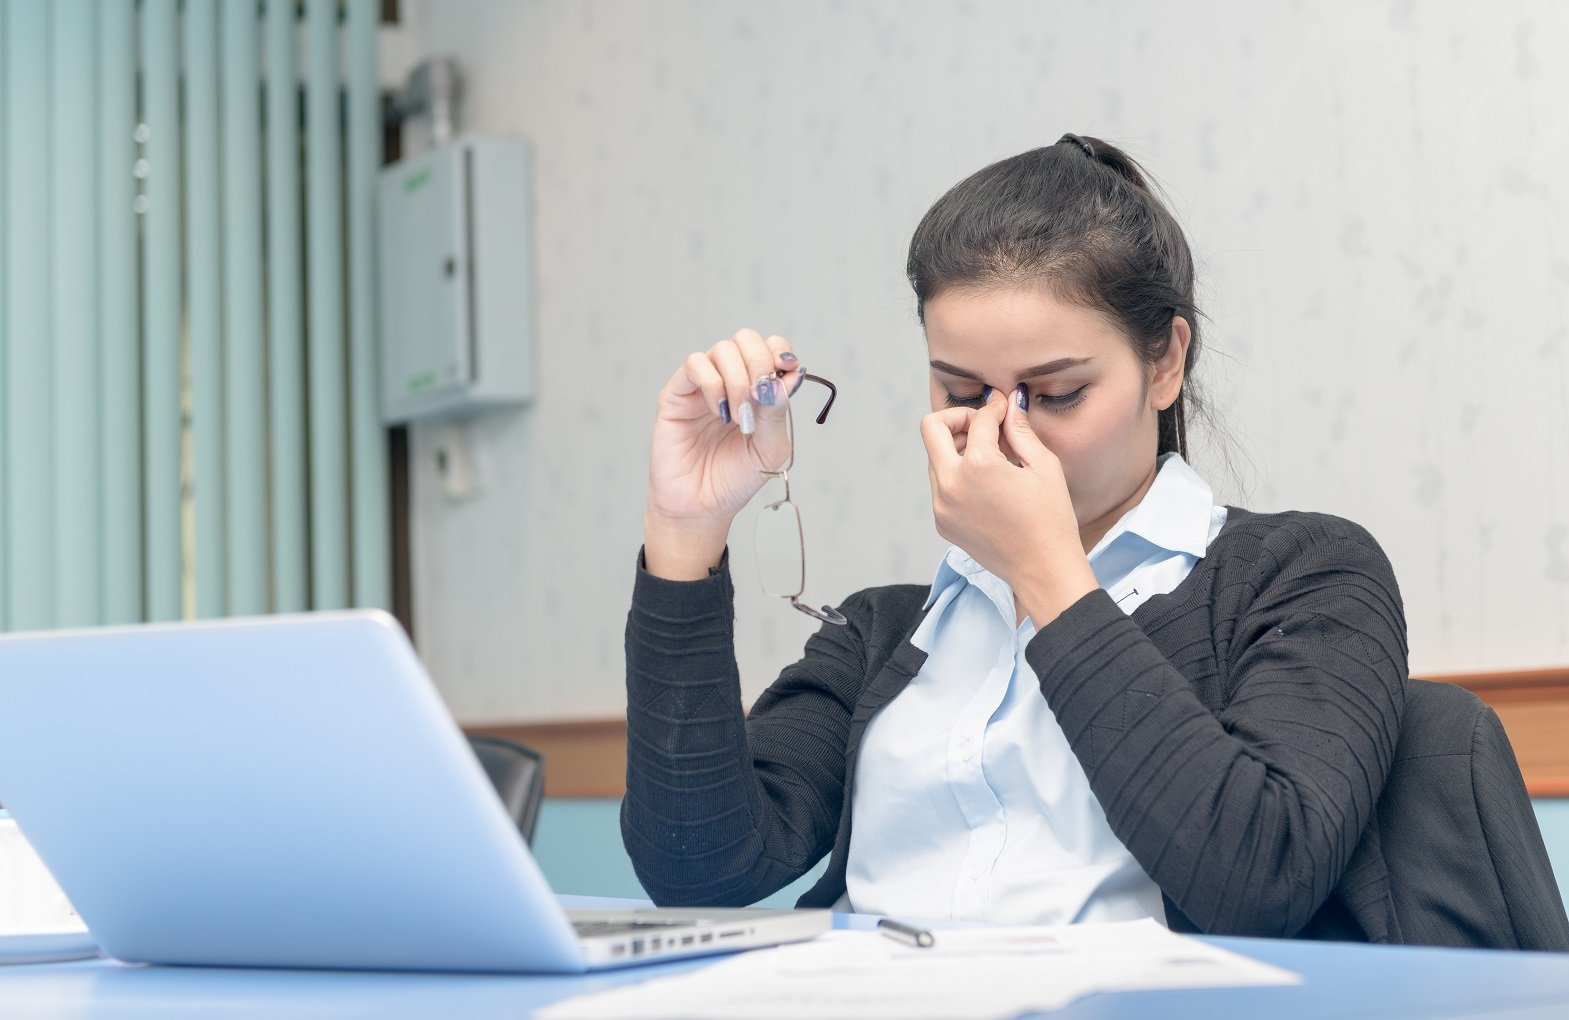 Asian woman got headache from working on computer all day long the effects of wearing wrong prescription glasses